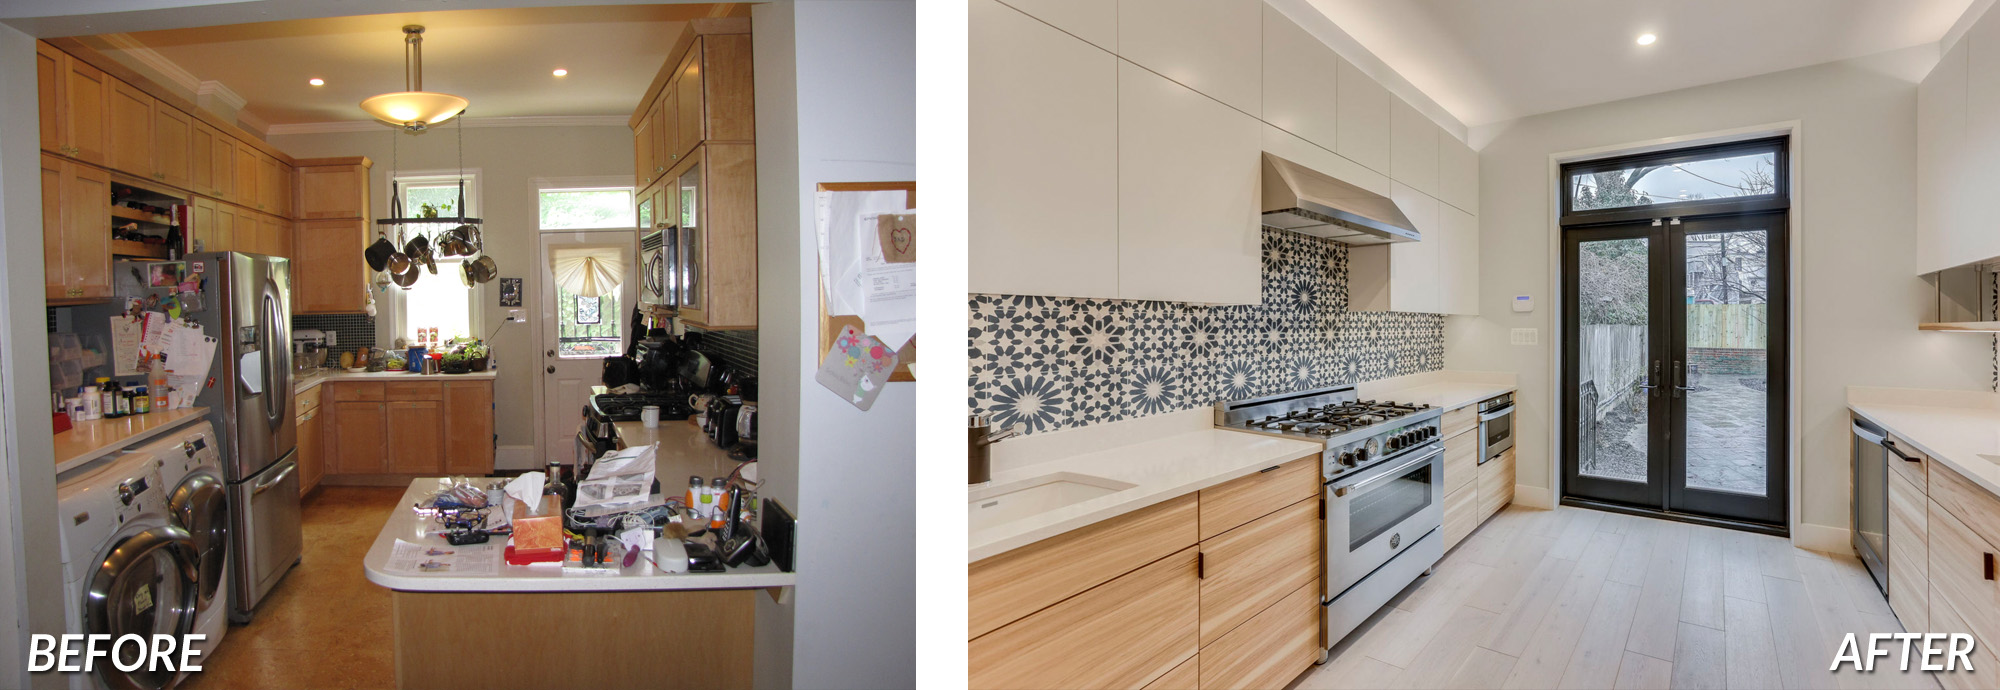 BOWA Design Design Build - DC Townhome Renovation Before & After